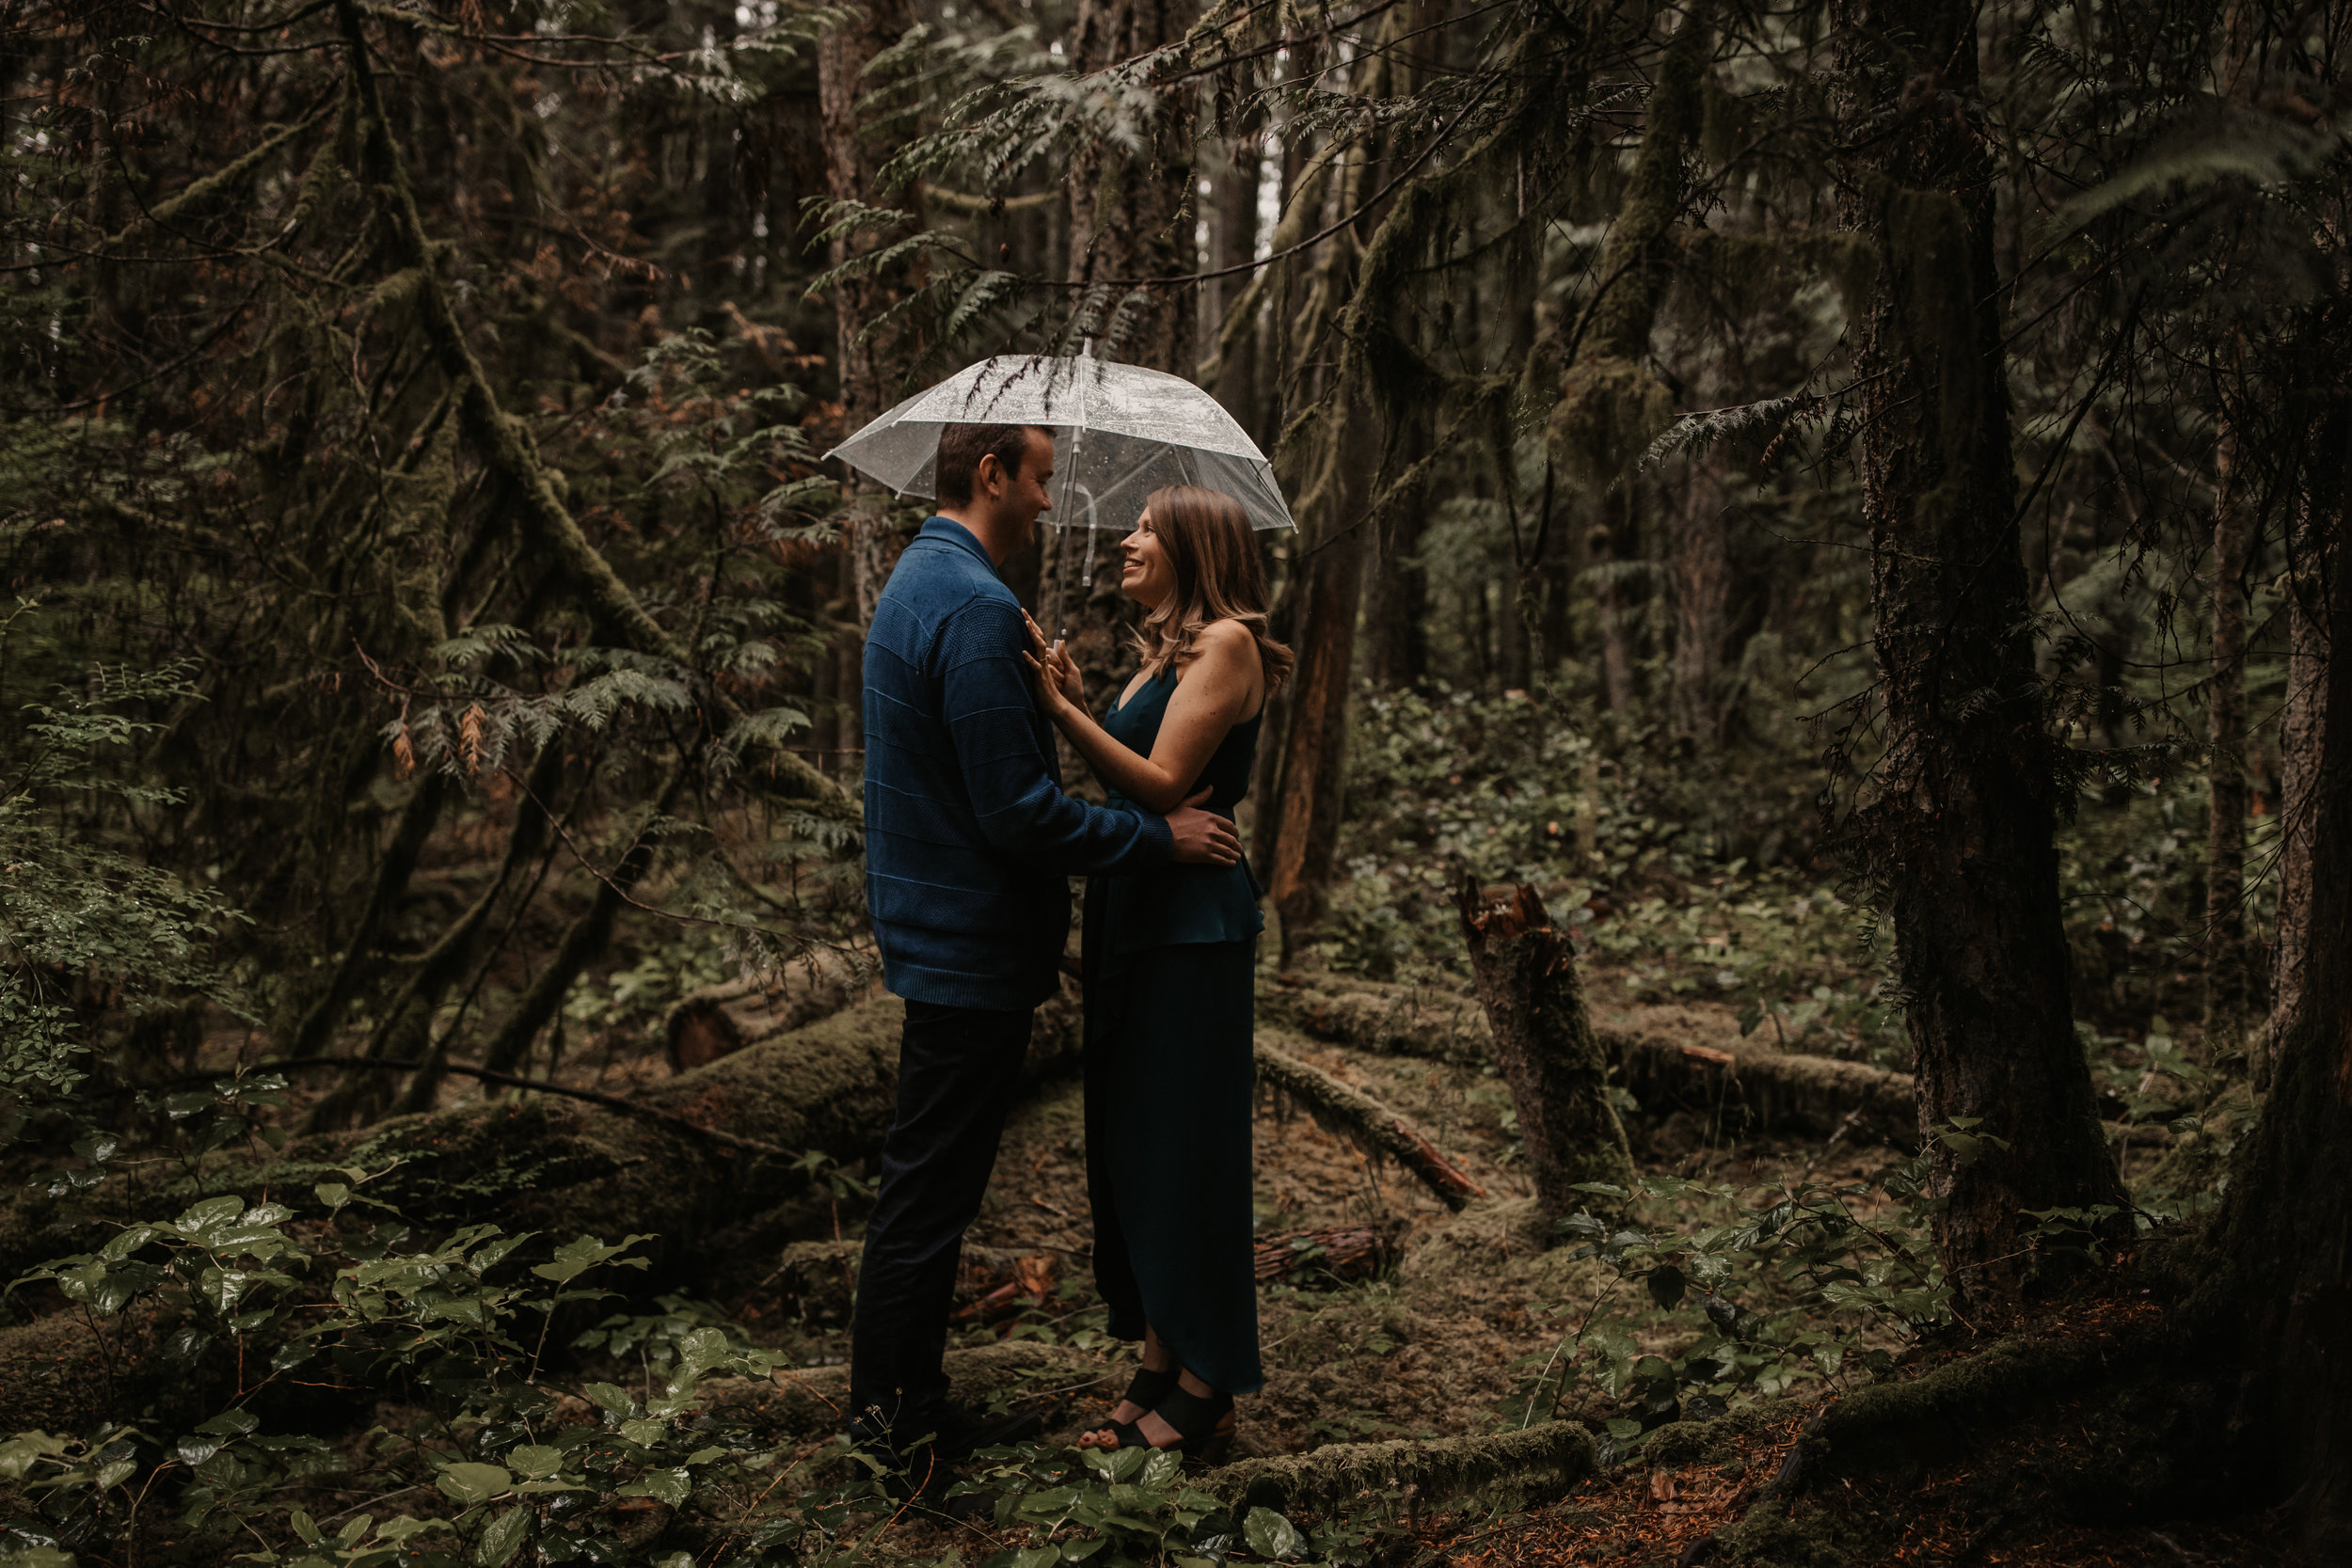 SUNSHINE COAST FOREST & BEACH ENGAGEMENT PHOTOS — Ashley & Antoine — JENNIFER PICARD PHOTOGRAPHY197.JPG